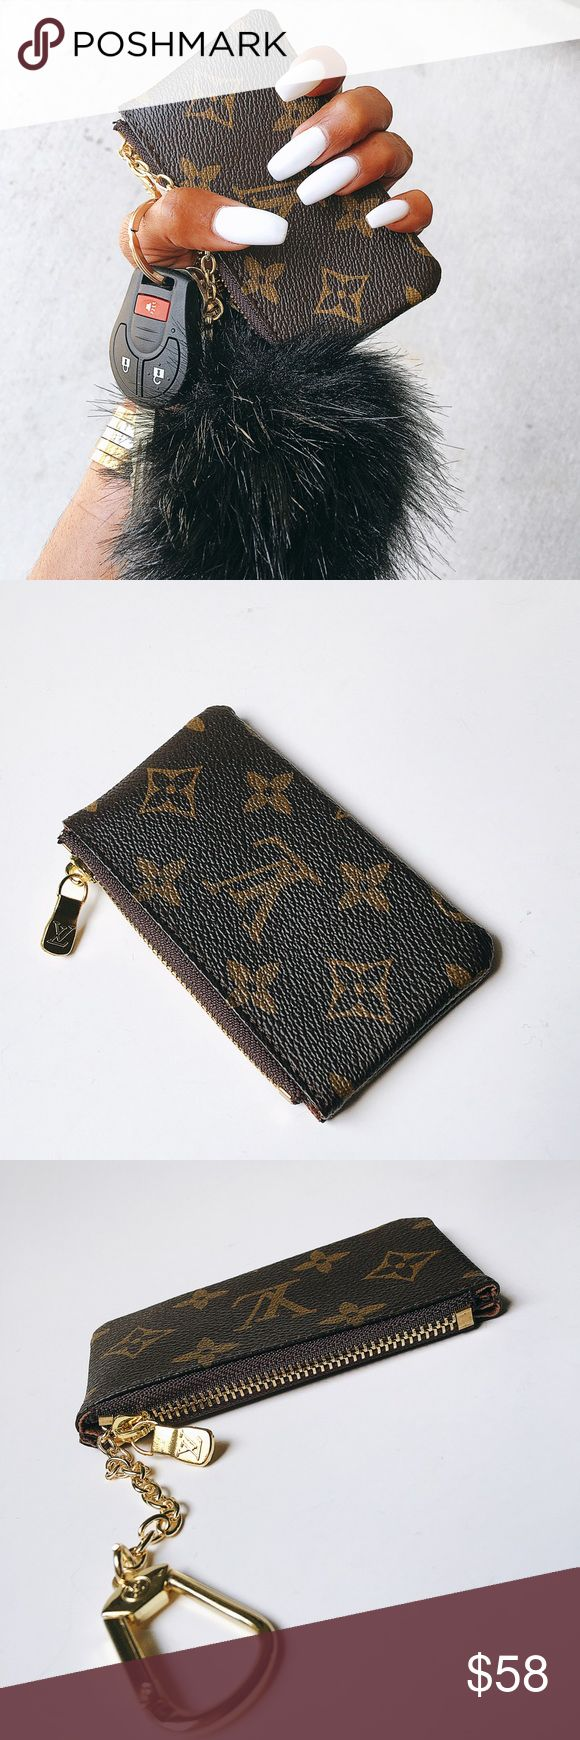 Key Pouch Inspired Monogram Key Pouch LV Louis Vuitton Accessories